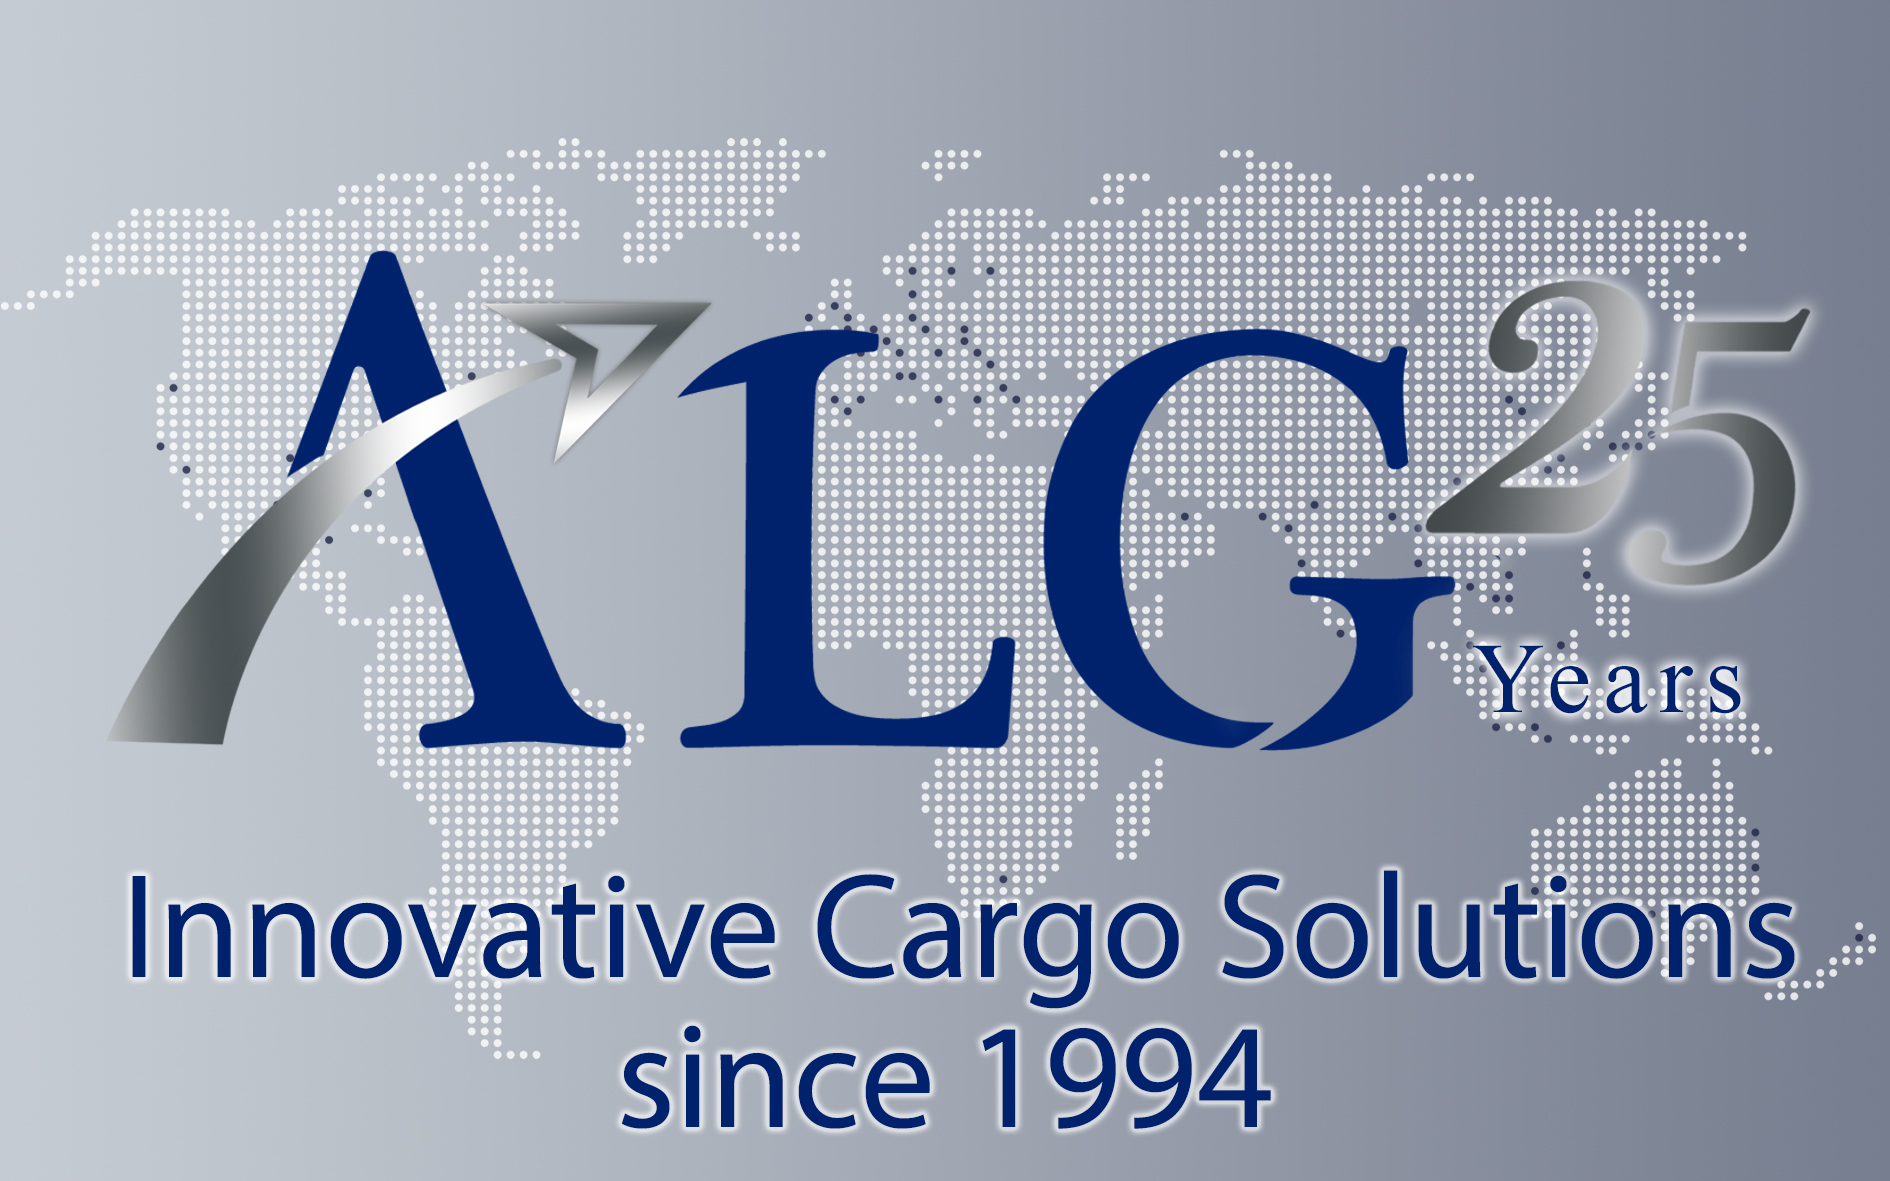 Innovative Cargo Solutions Since 1994